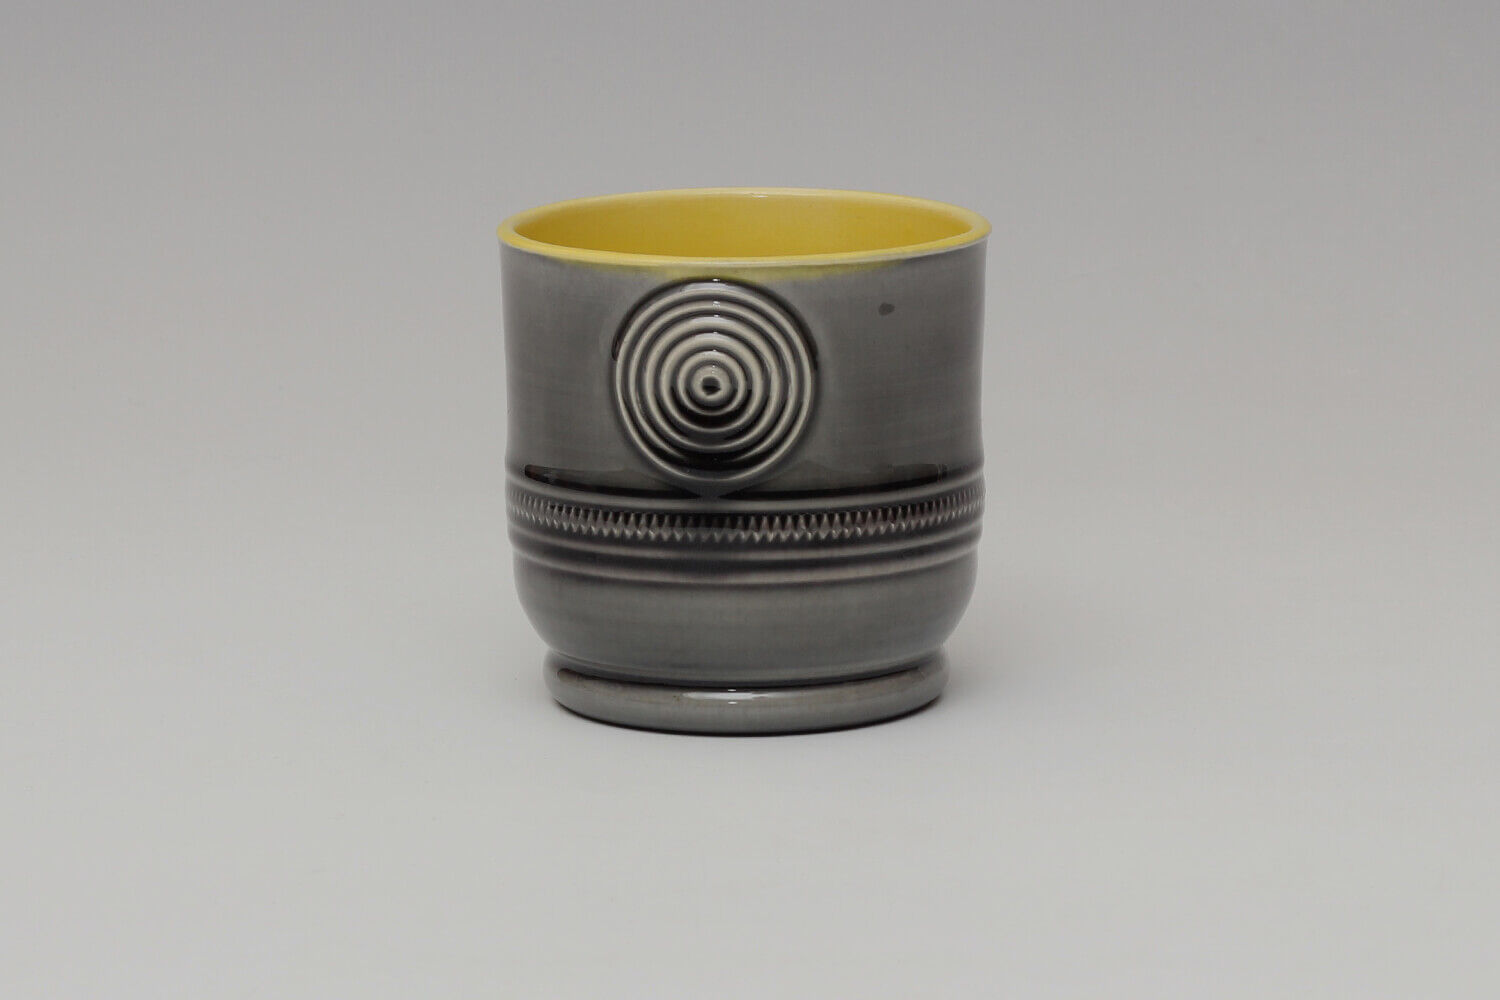 Walter keeler Ceramic Earthenware Tea Bowl 09